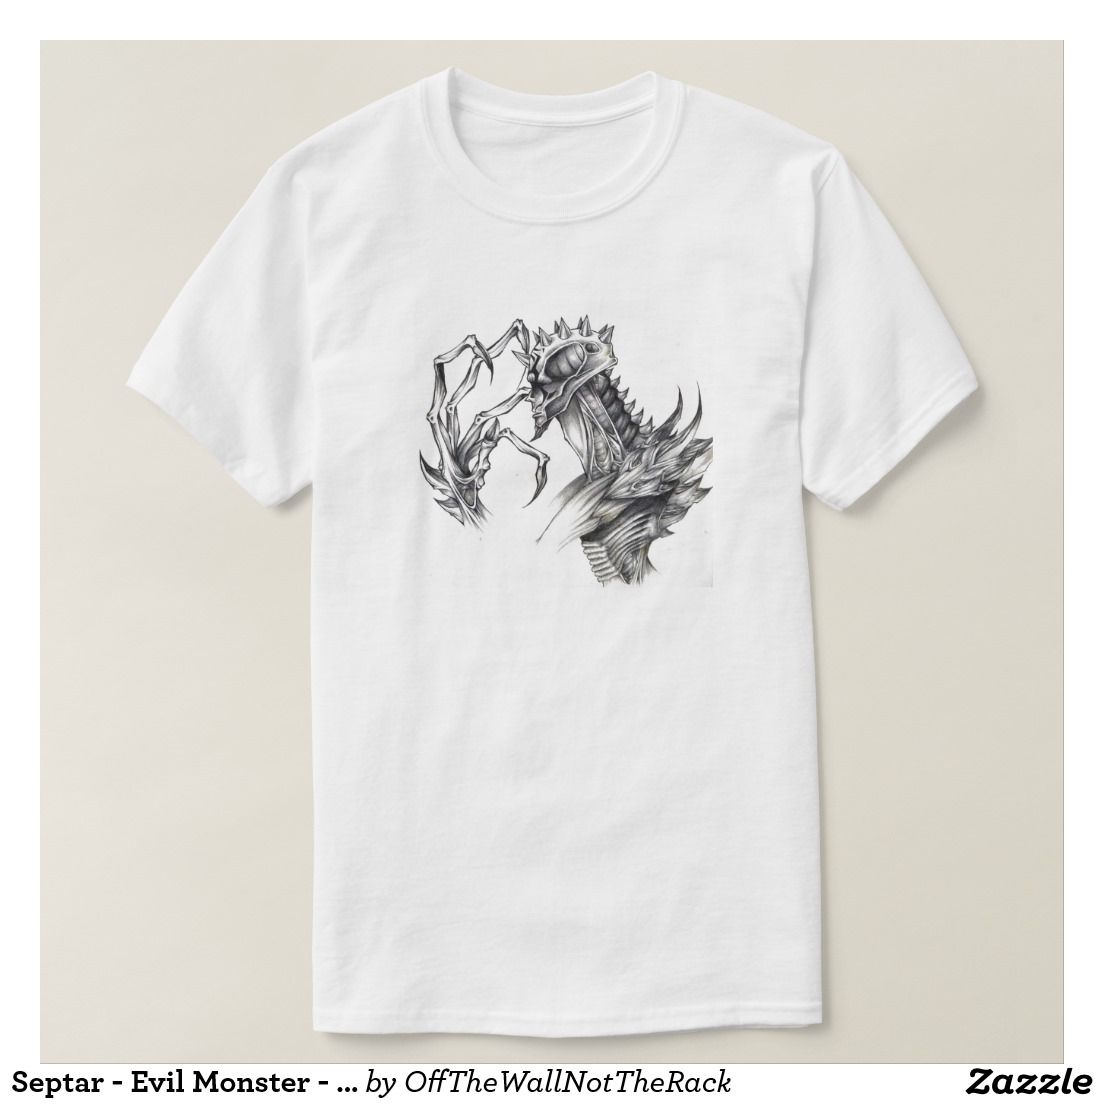 Septar - Evil Monster - Black & White Pen Sketch T-Shirt